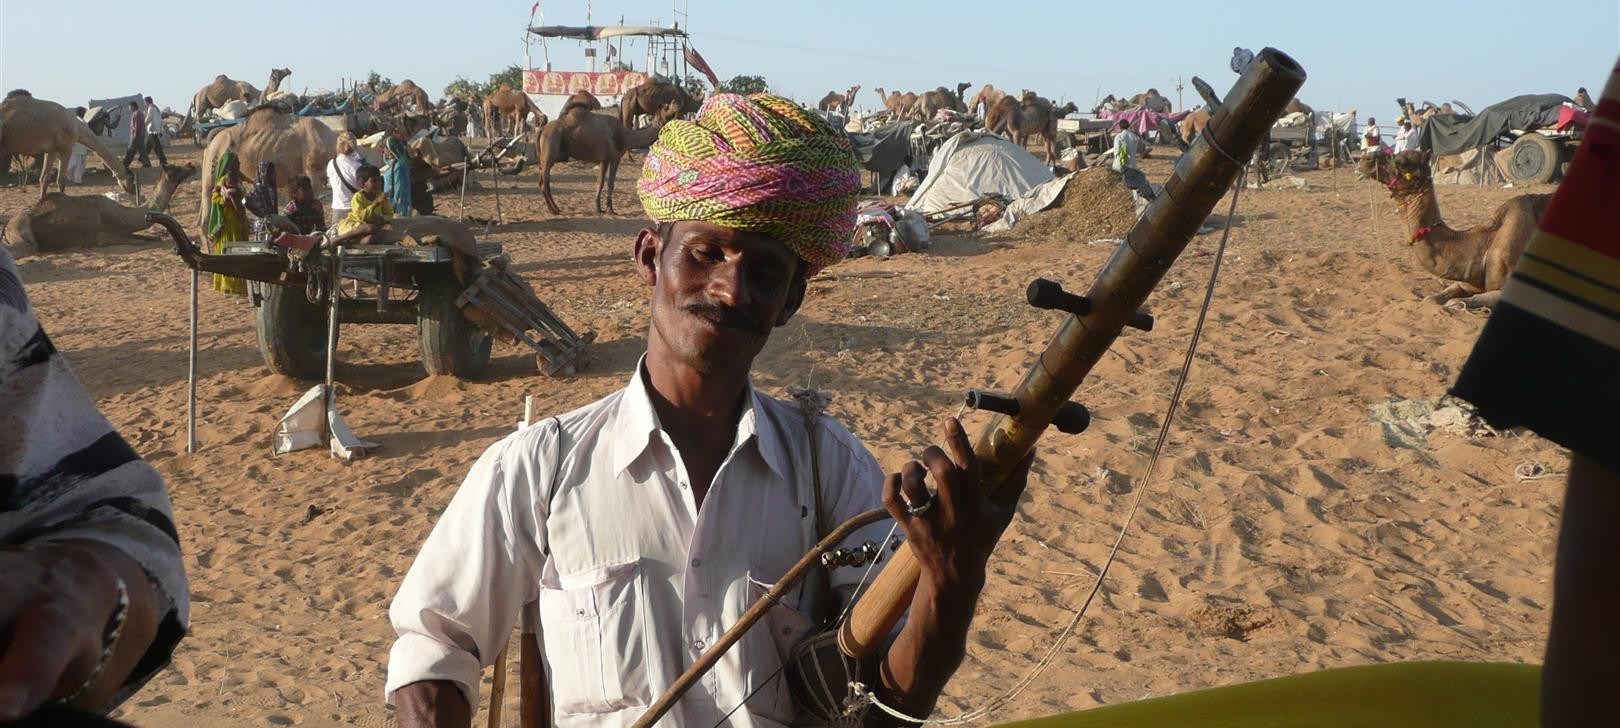 musician in Pushkar (photo by Dick Sakahara)